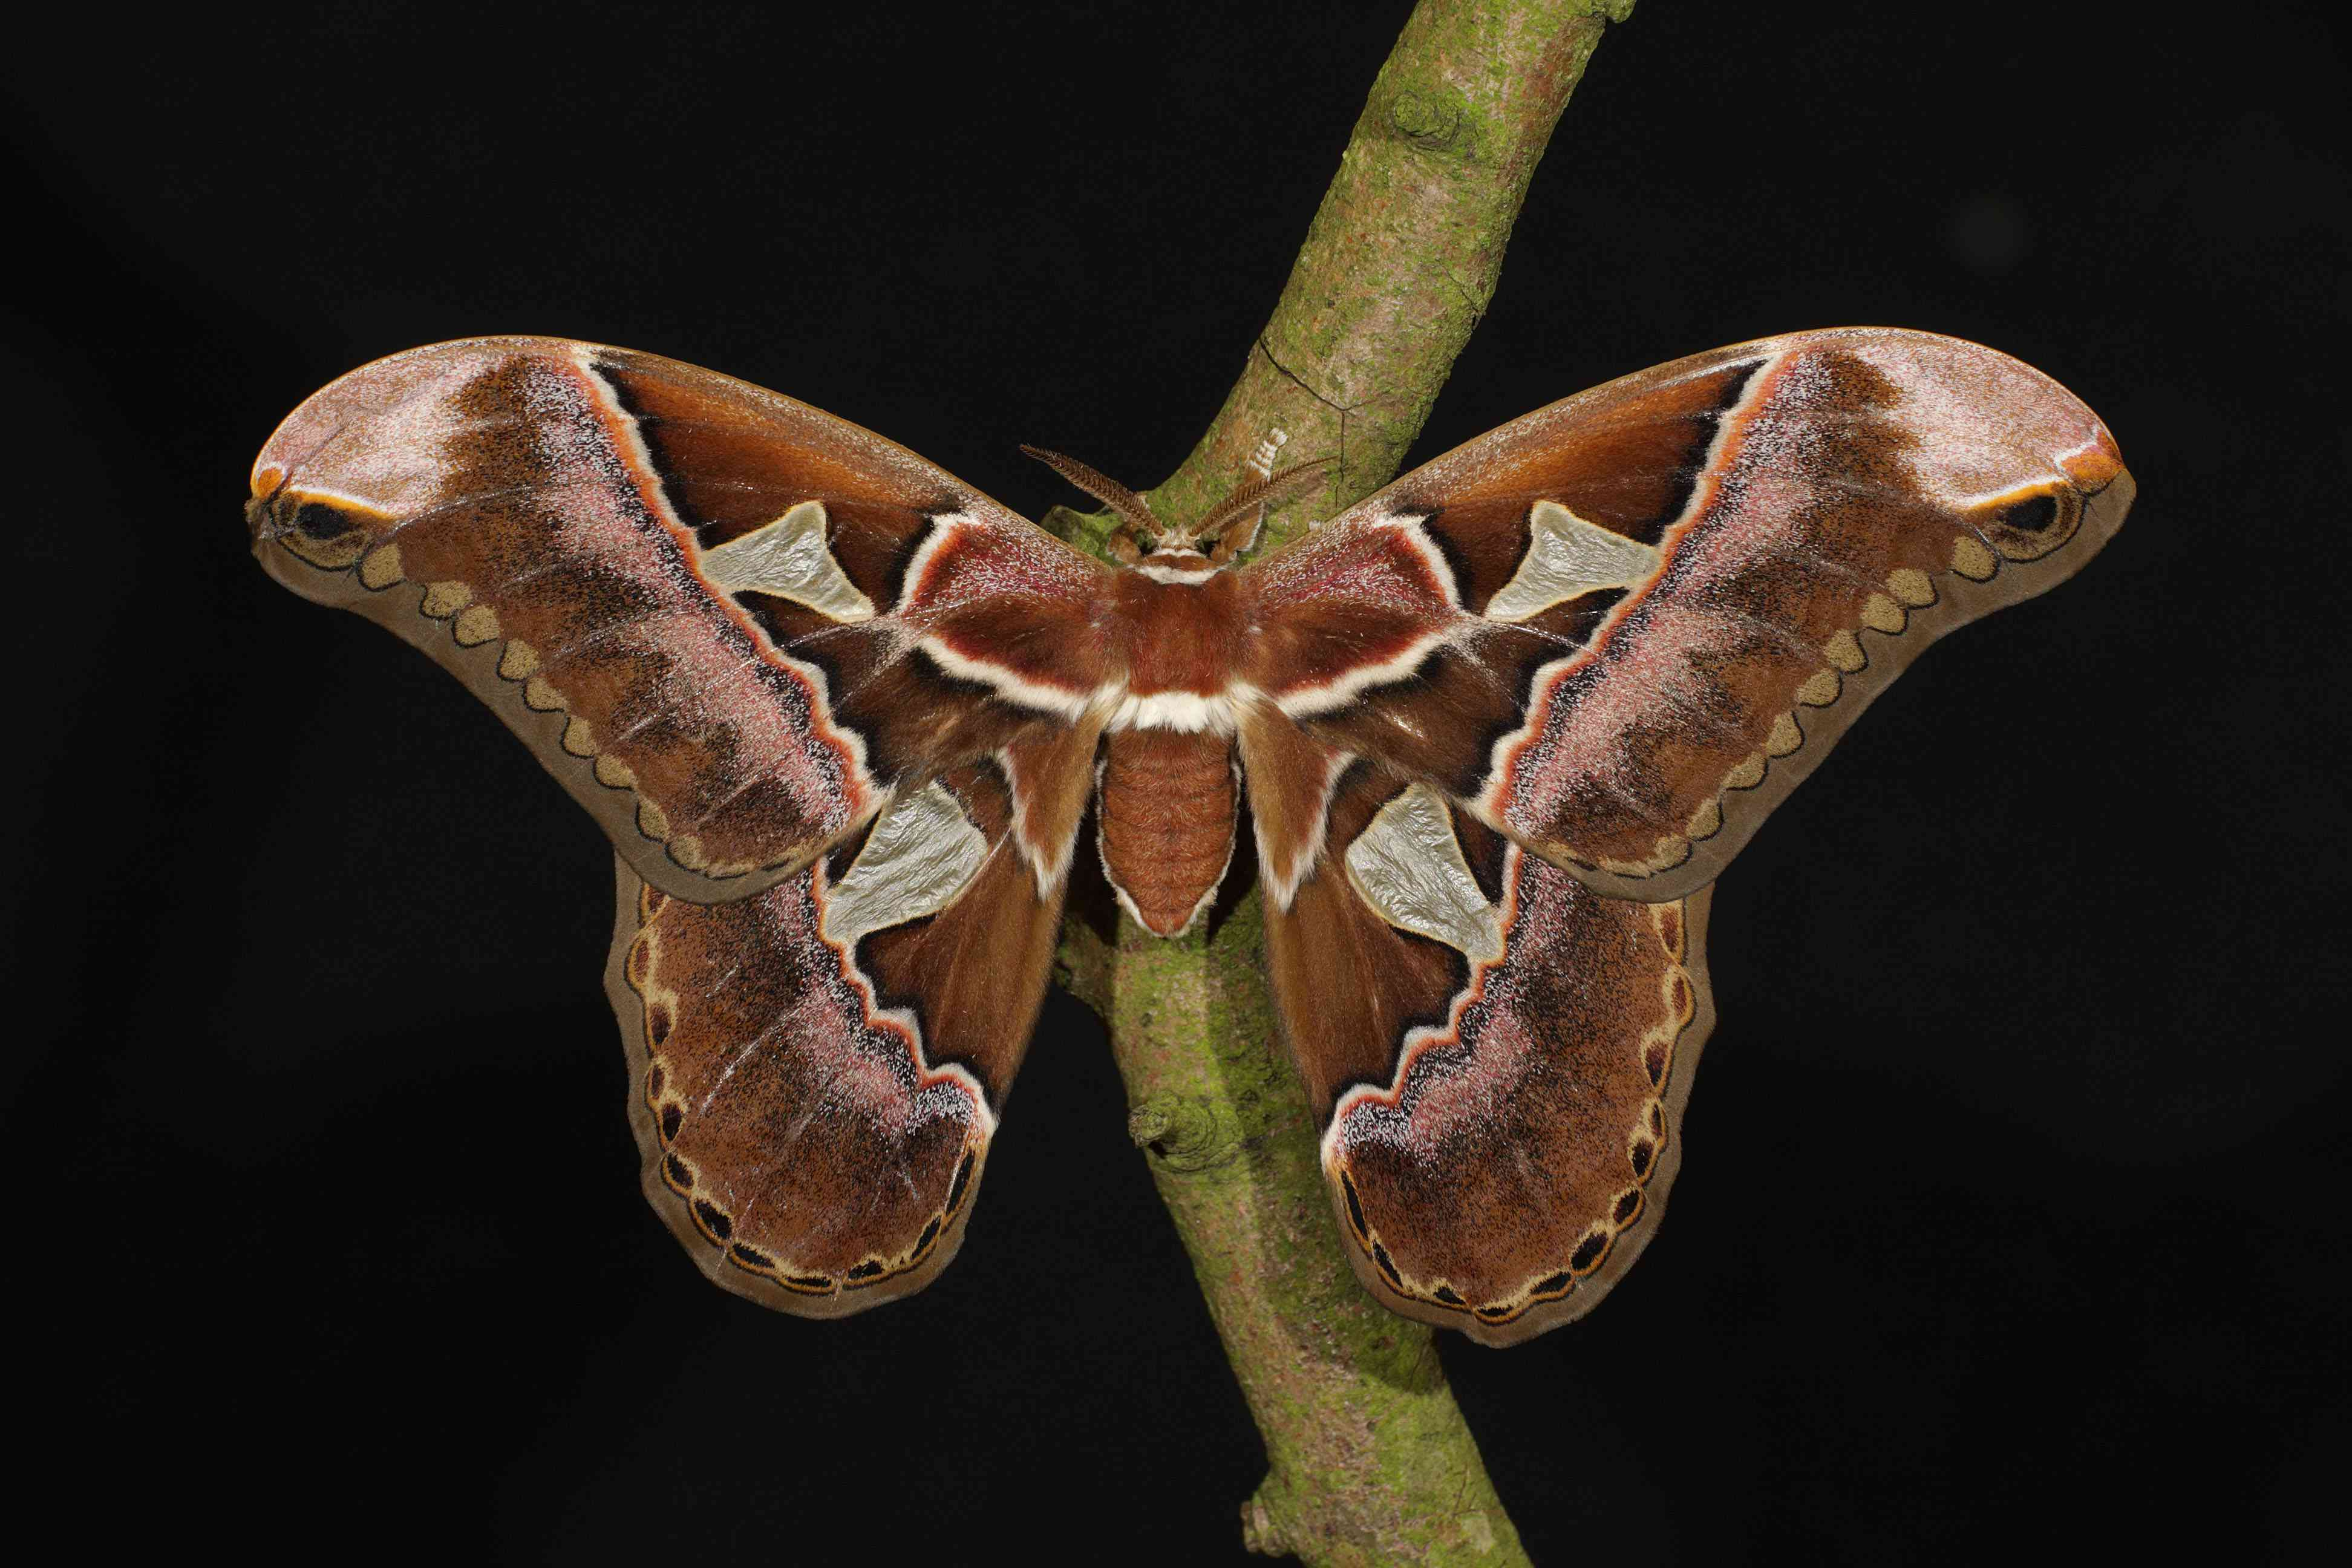 A brown and pink moth with large wings sits on a branch